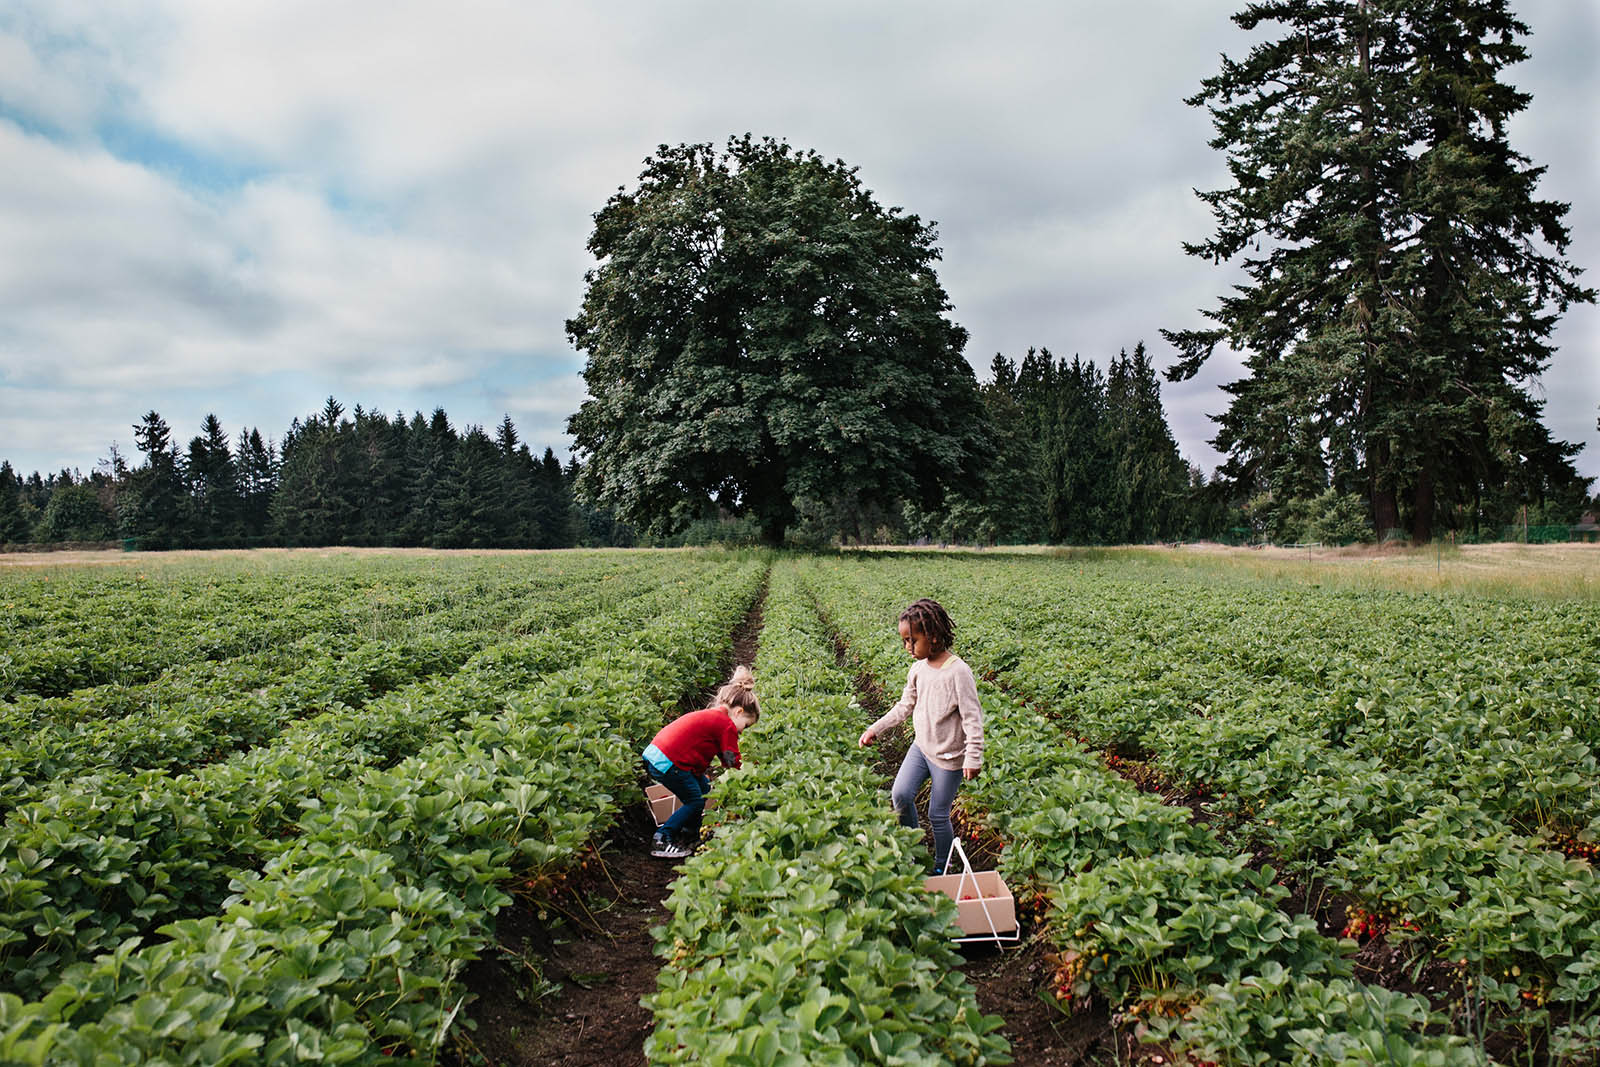 The summer months offer up countless opportunities to infuse your lifestyle sessions — with clients or your own brood — with color, whimsy and pure joy. To help you plow this rich loam, we're planting a few ideas, from the sublimely simple to the ridiculously complex. (Bonus: These'll keep the kids occupied for a minute, too.)